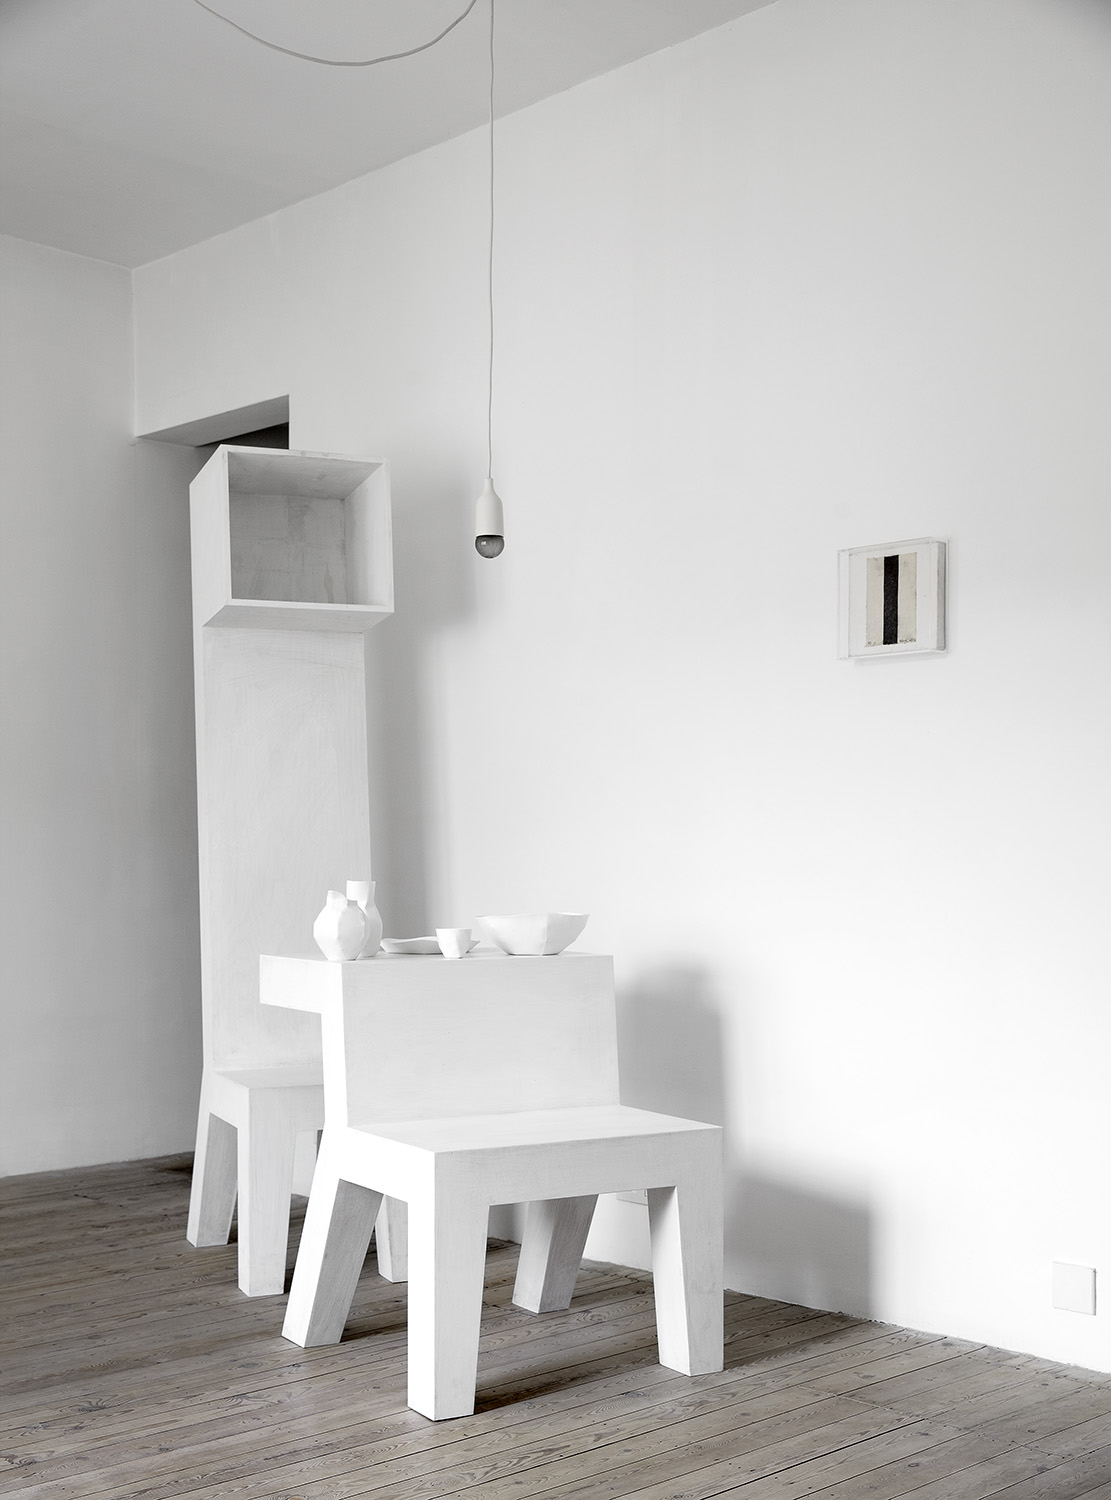 The guest apartment above   Sofie Lachaert Gallery in Tielrode Belgium, featuring numerous pieces by Bram Boo and Maarten Van Severen. Lachaert and D'Hanis created the calm white painted space to allow exhibiting artists to stay in a poetic environment. Photography Sharyn Cairns.